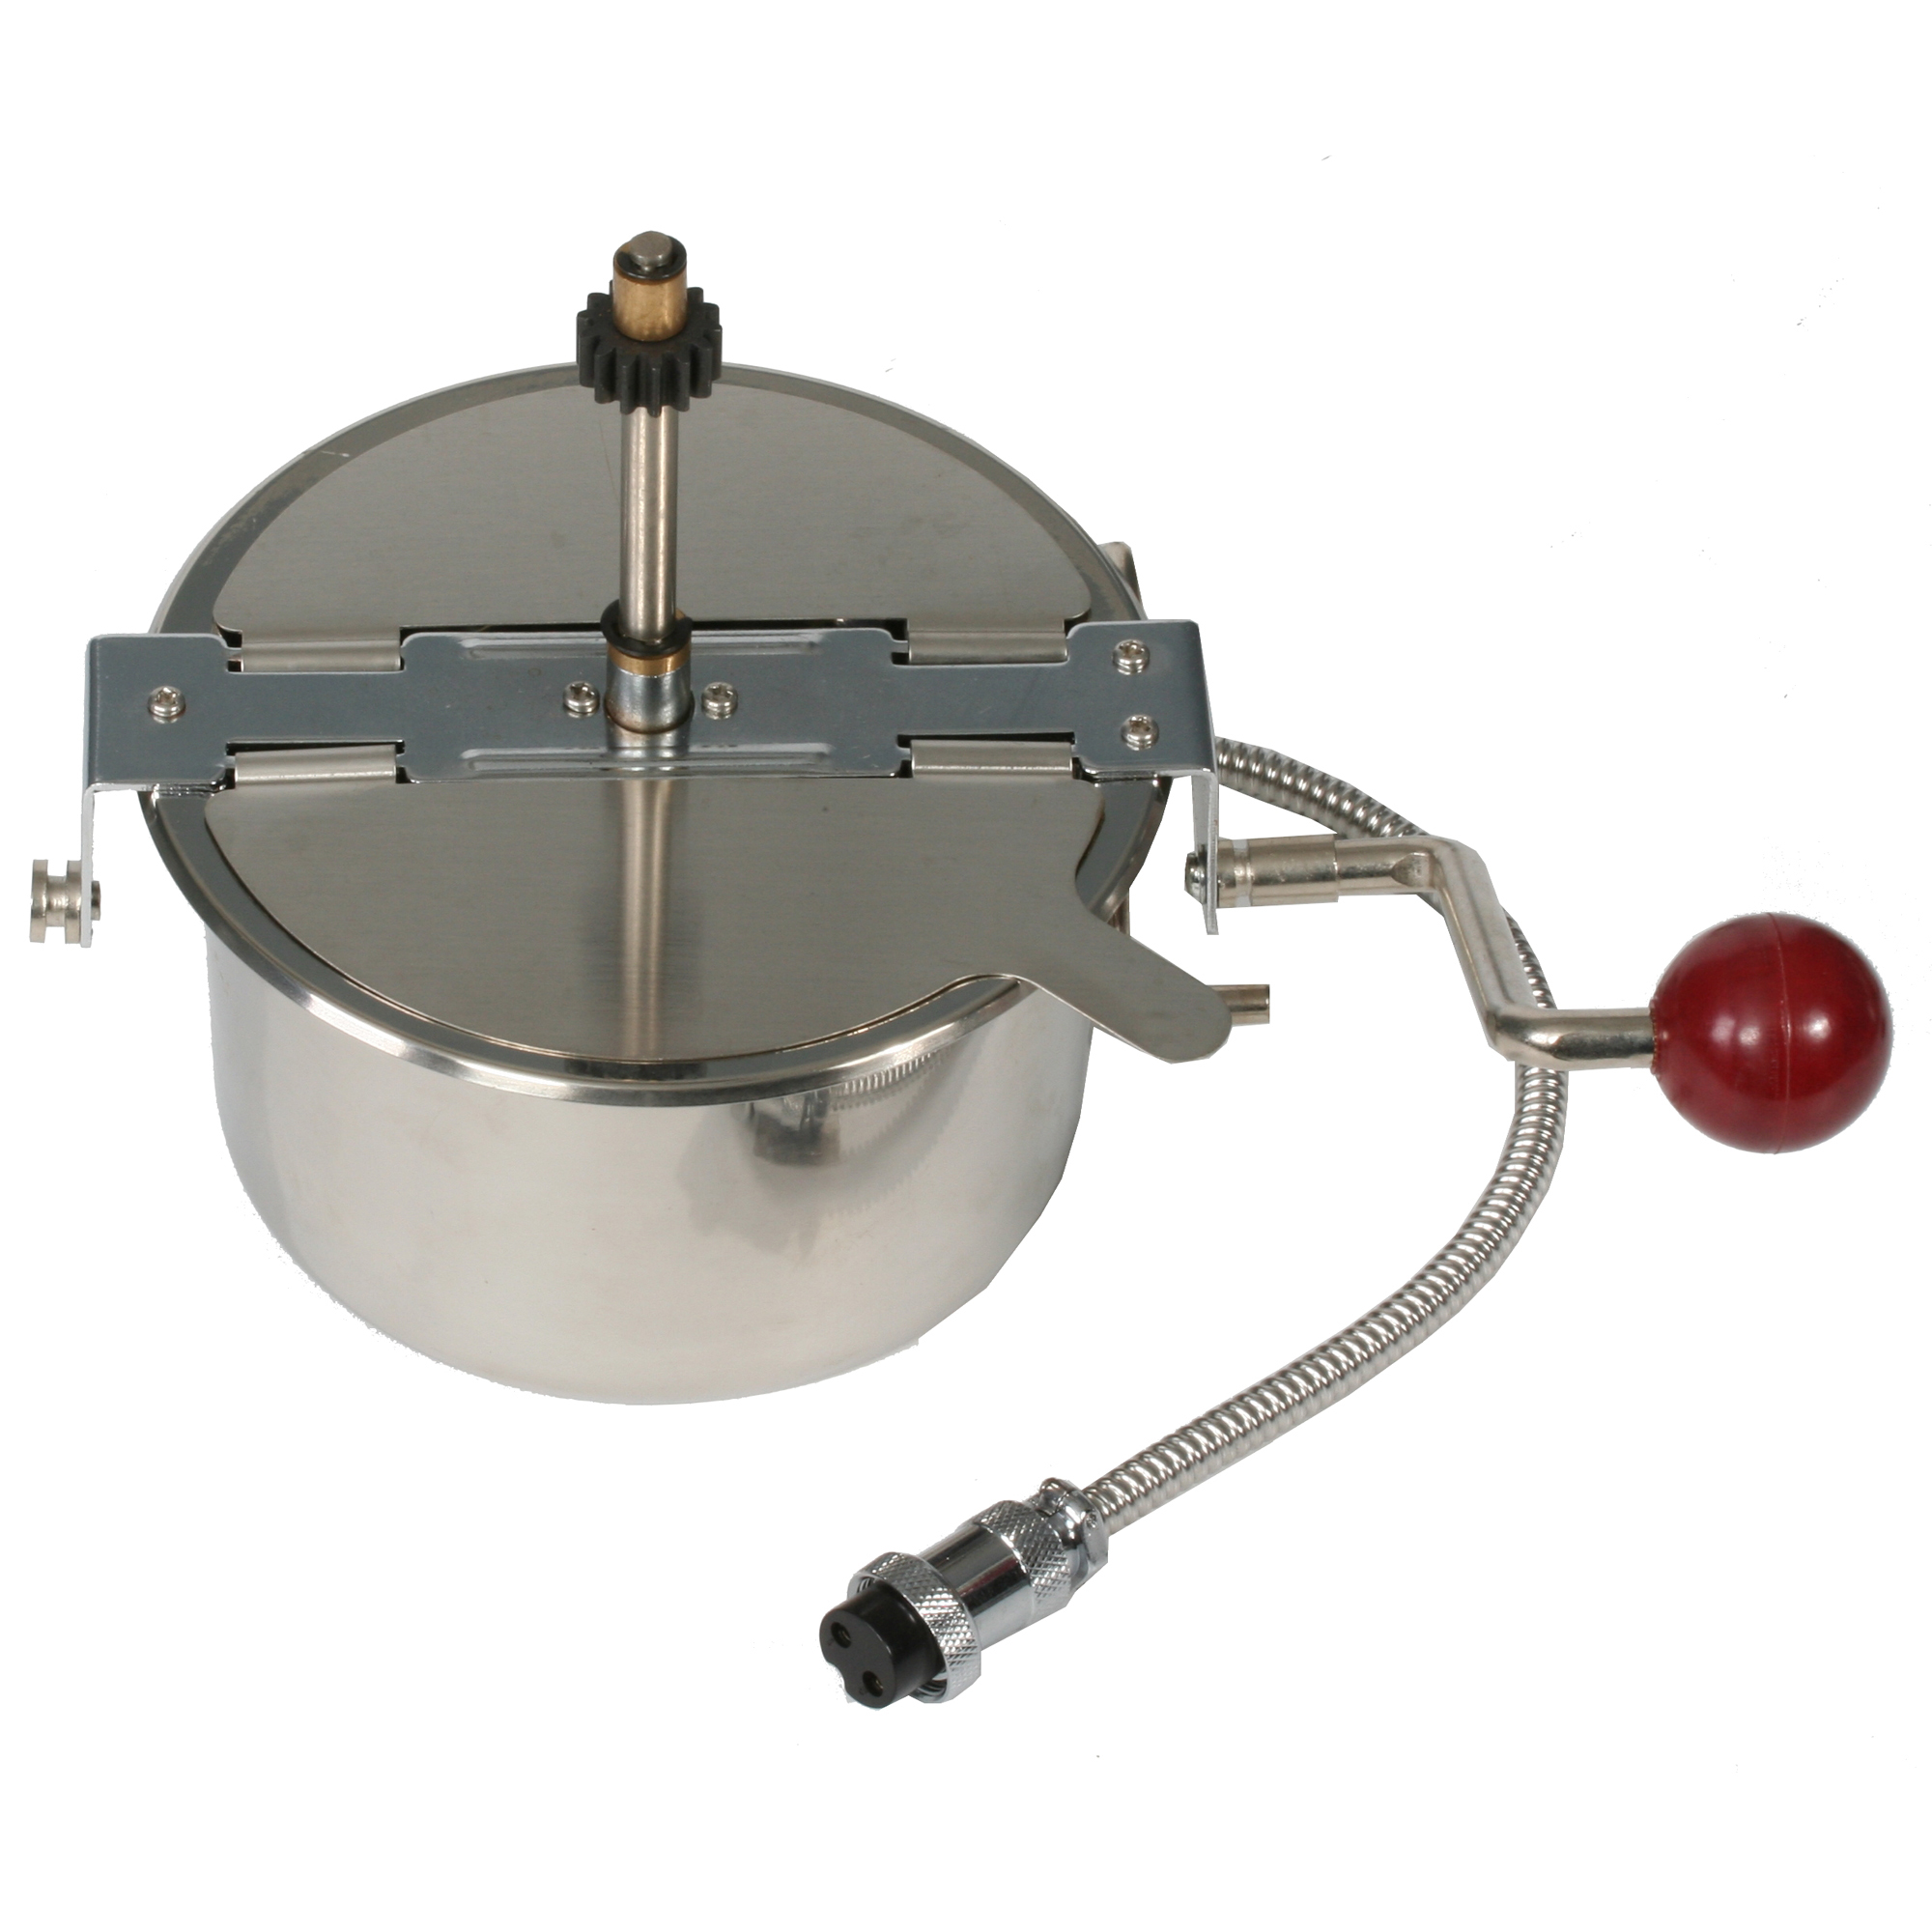 4 Ounce Popcorn Kettle for Great Northern Popcorn Stainless Steel Popper Kettles